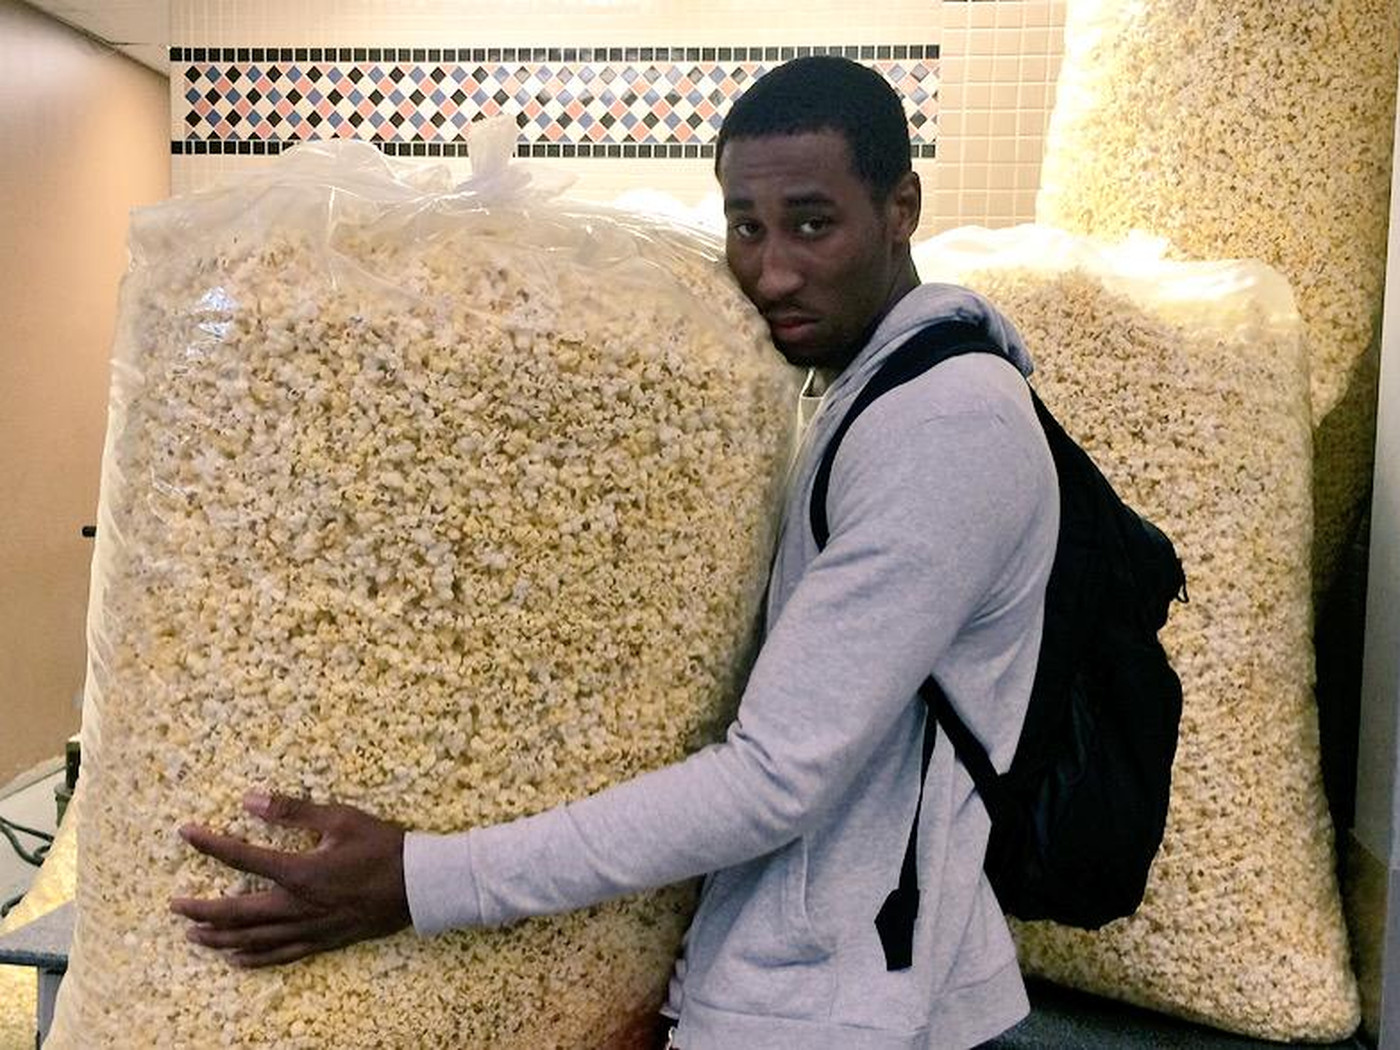 6 7 Nba Player Holds Bag Of Popcorn So Giant It Makes Him Look Like A Small Child Sbnation